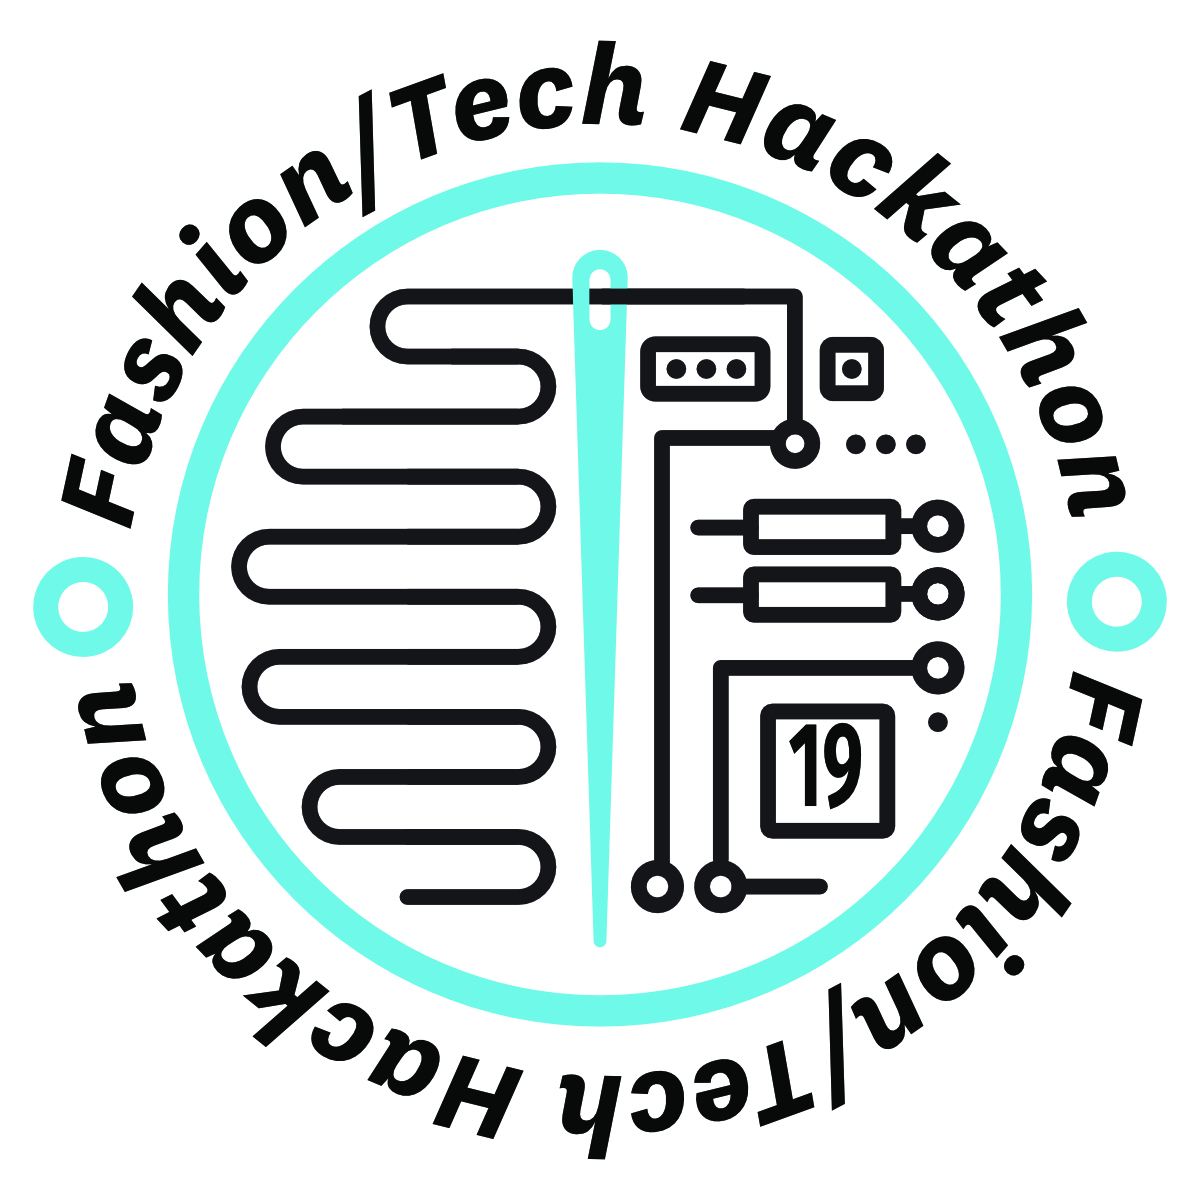 Fashion Tech Hackathon 2019